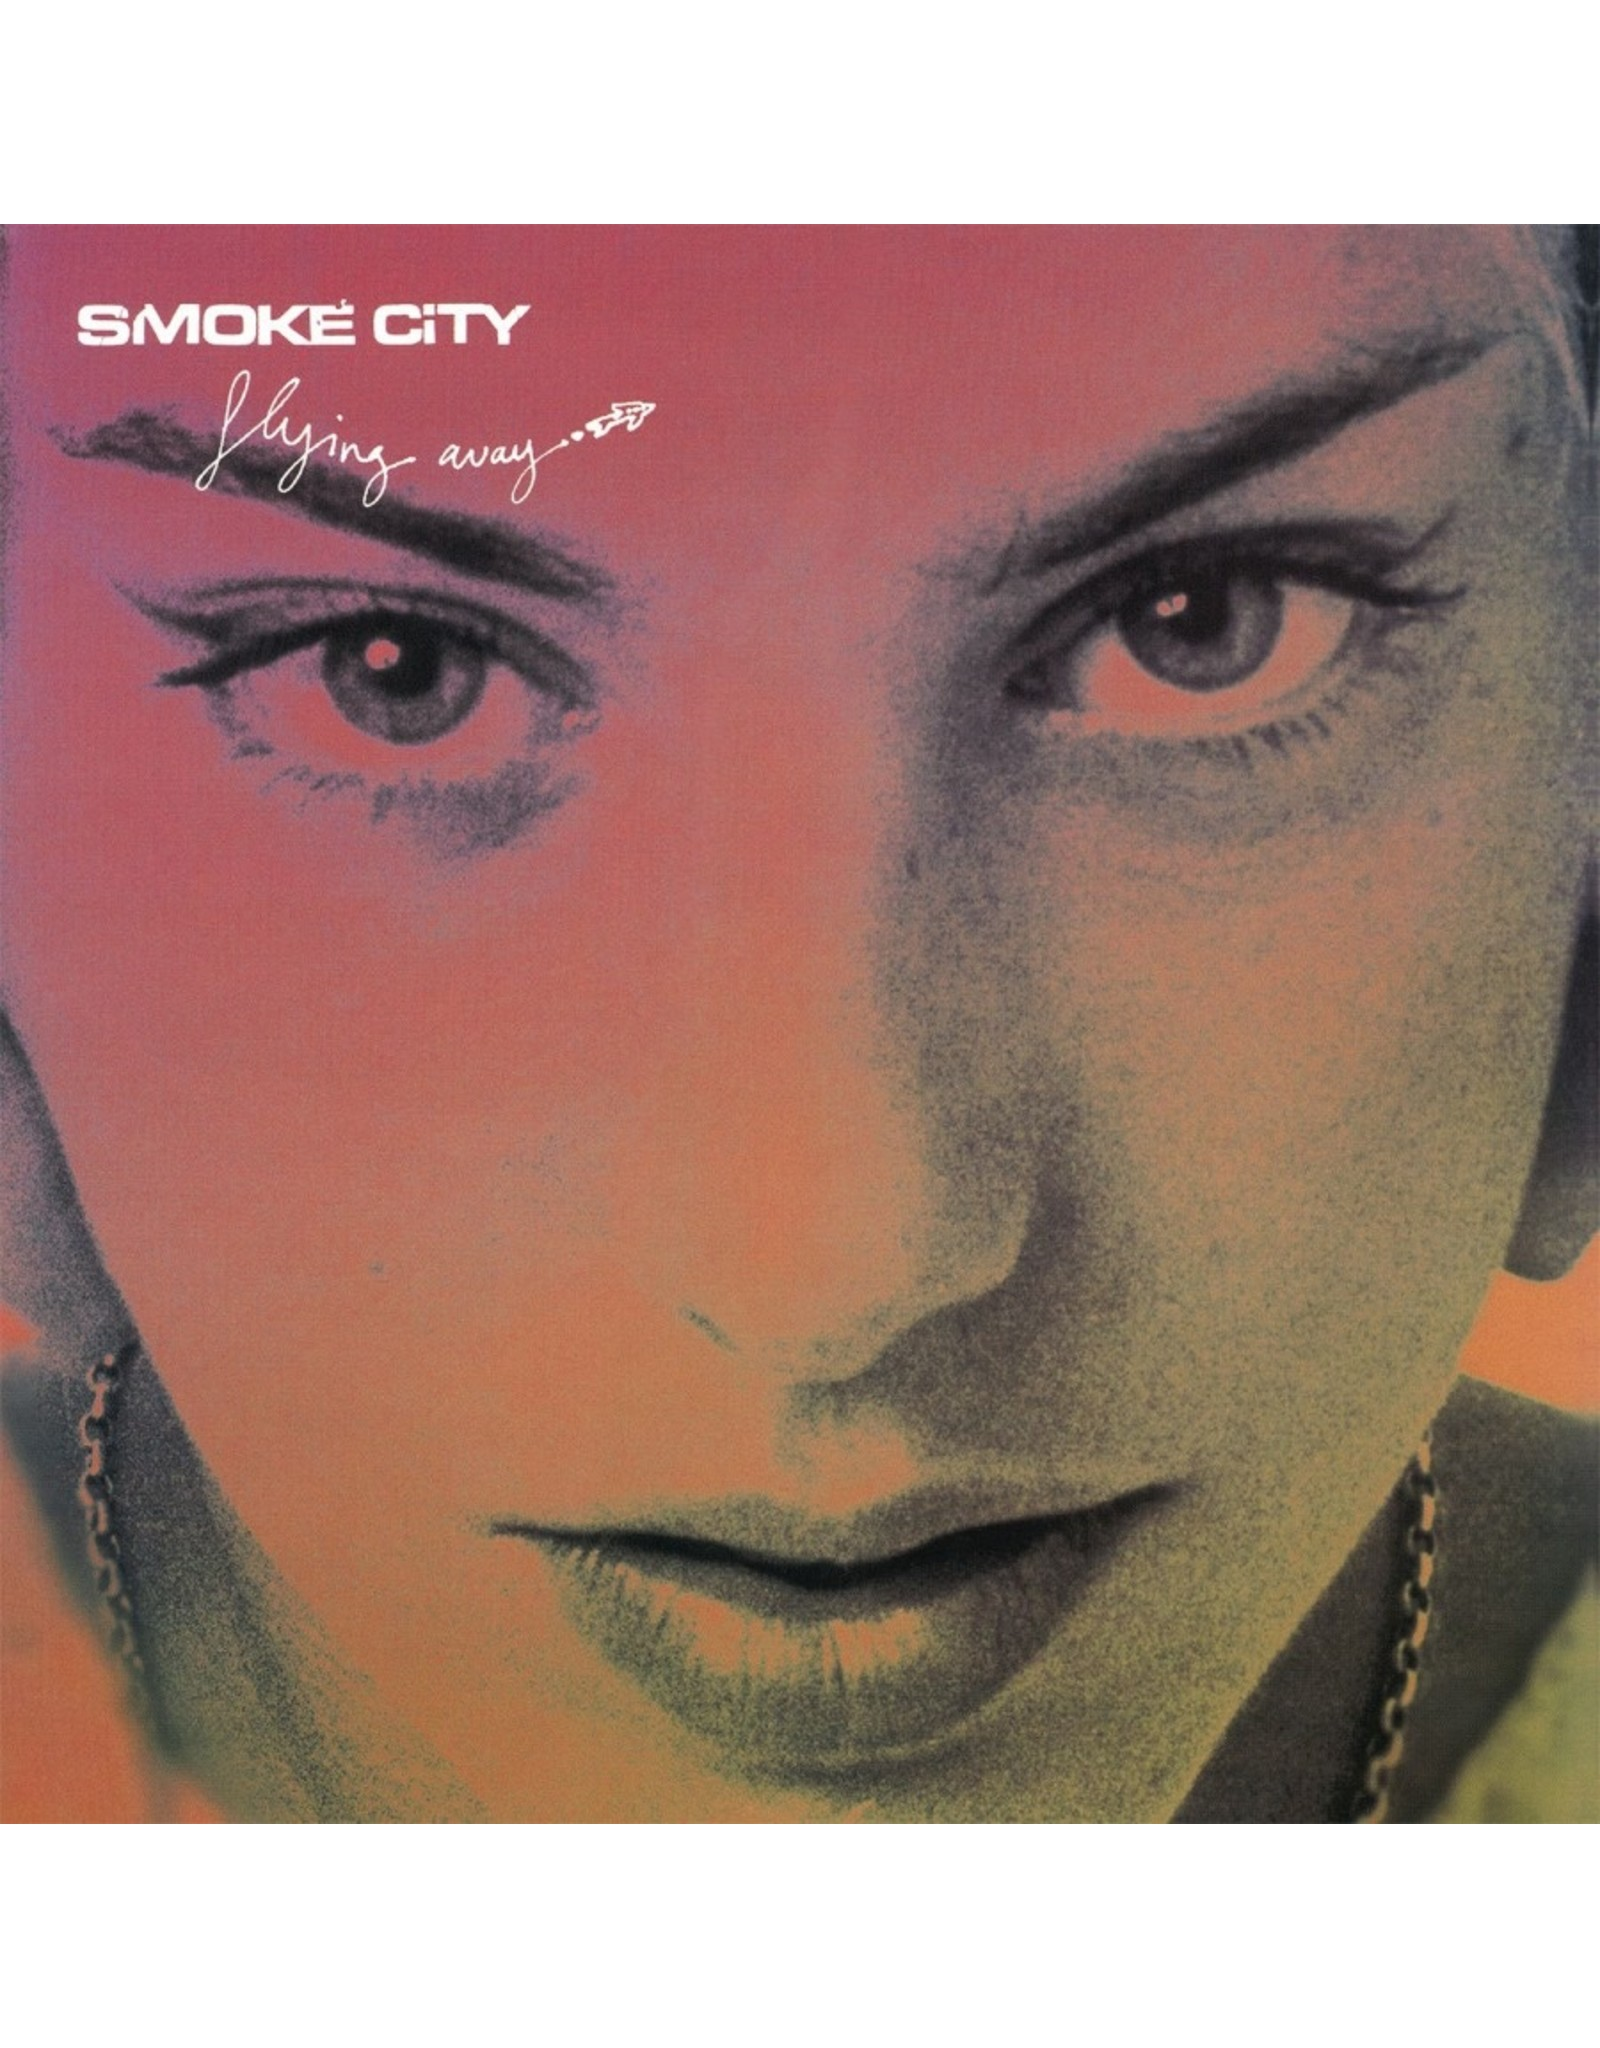 New Vinyl Smoke City - Flying Away (Colored) LP